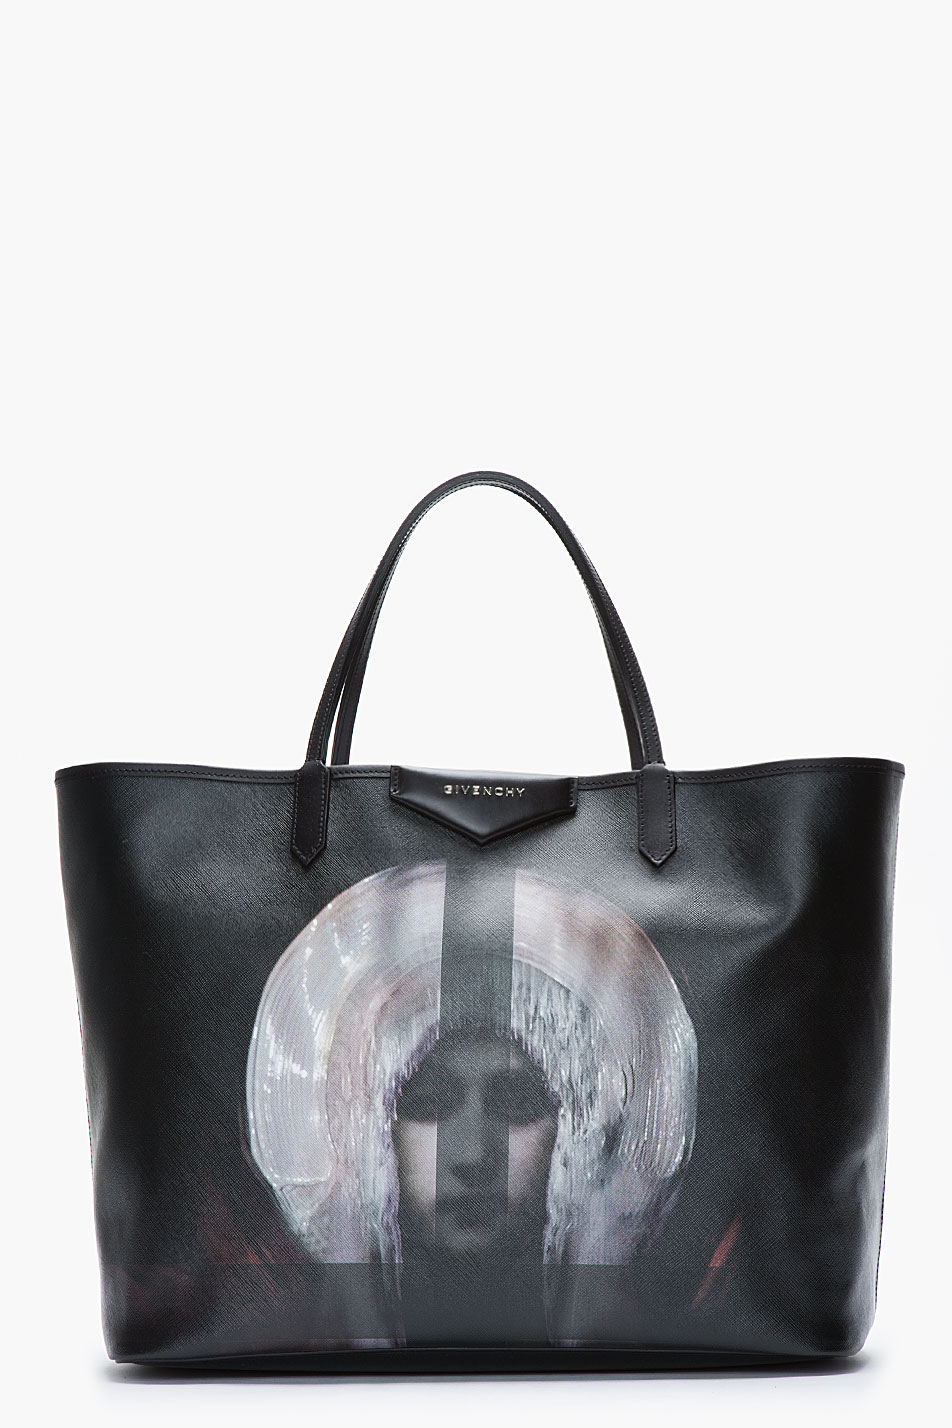 Lyst - Givenchy Large Black Pvc Madonna Printed Antigona Shopper ... 116d88a97a32f